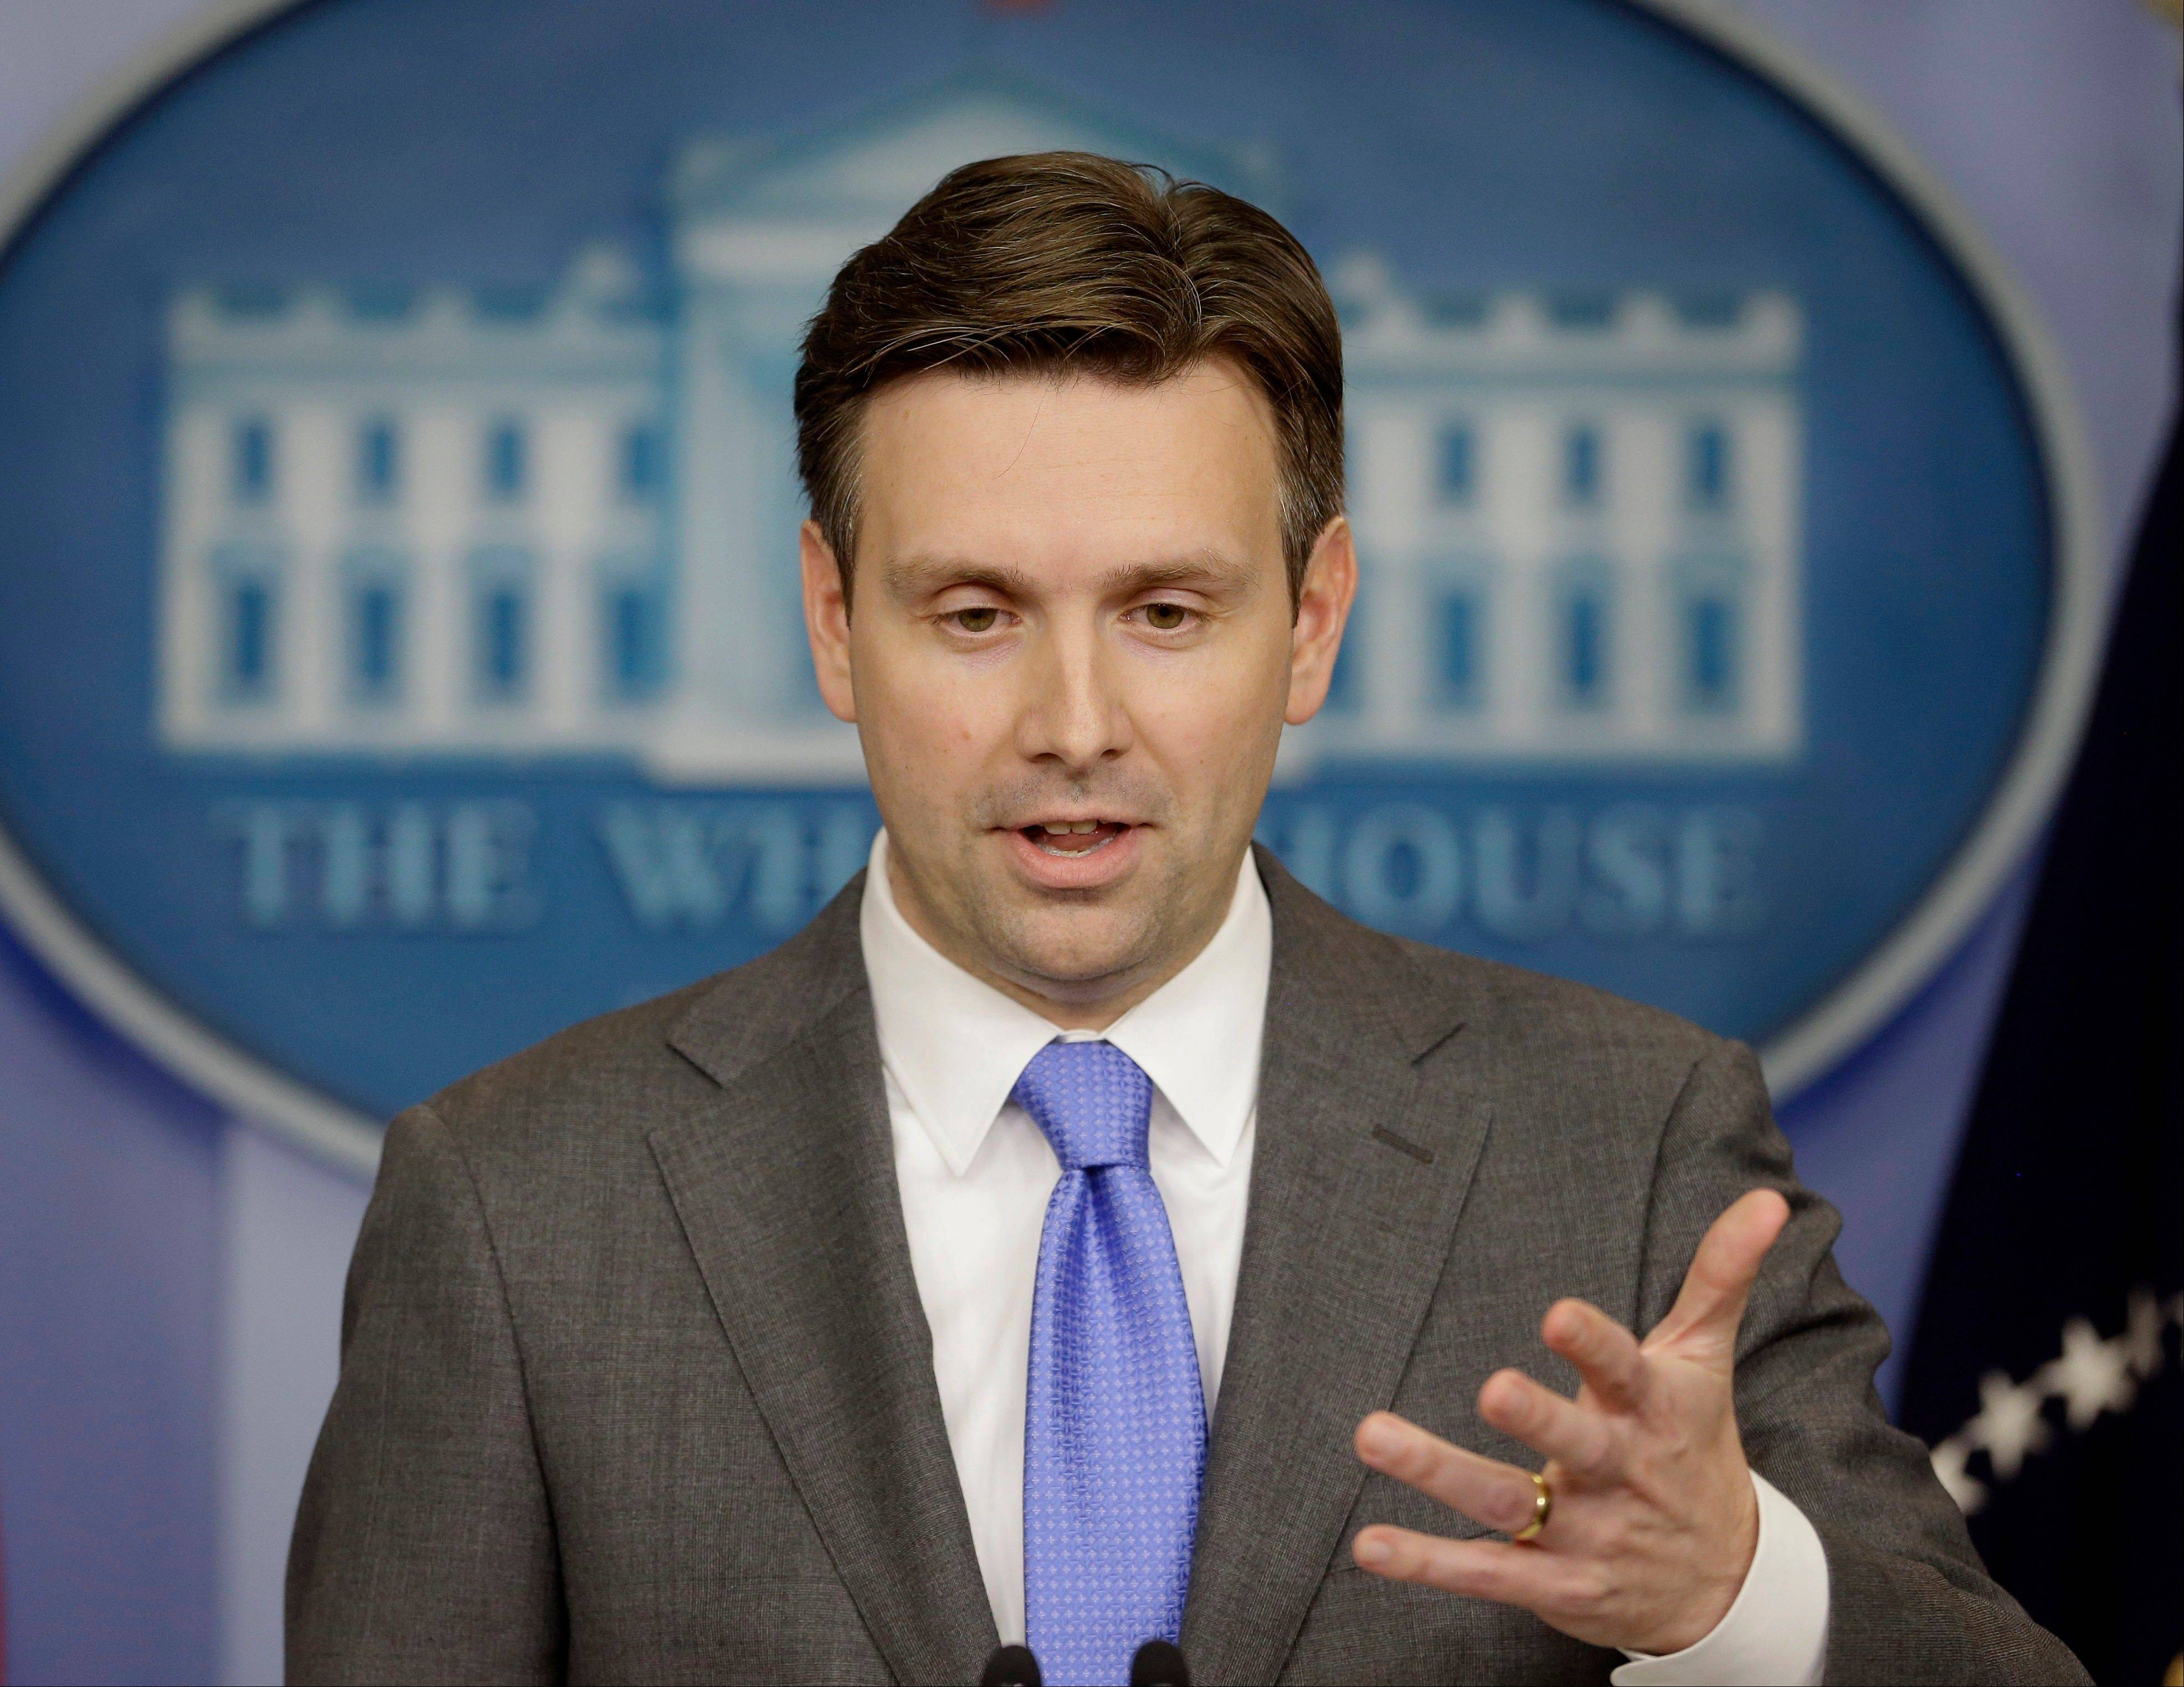 White House principal deputy press secretary Josh Earnest takes a question during the daily news briefing at the White House in Washington, Thursday, Nov. 21, 2013. Earnest responded to a letter submitted by the White House Correspondents Association (WHCA) and other new organizations accusing top officials of blocking access to President Barack Obama and of substituting its own 'visual press release'.